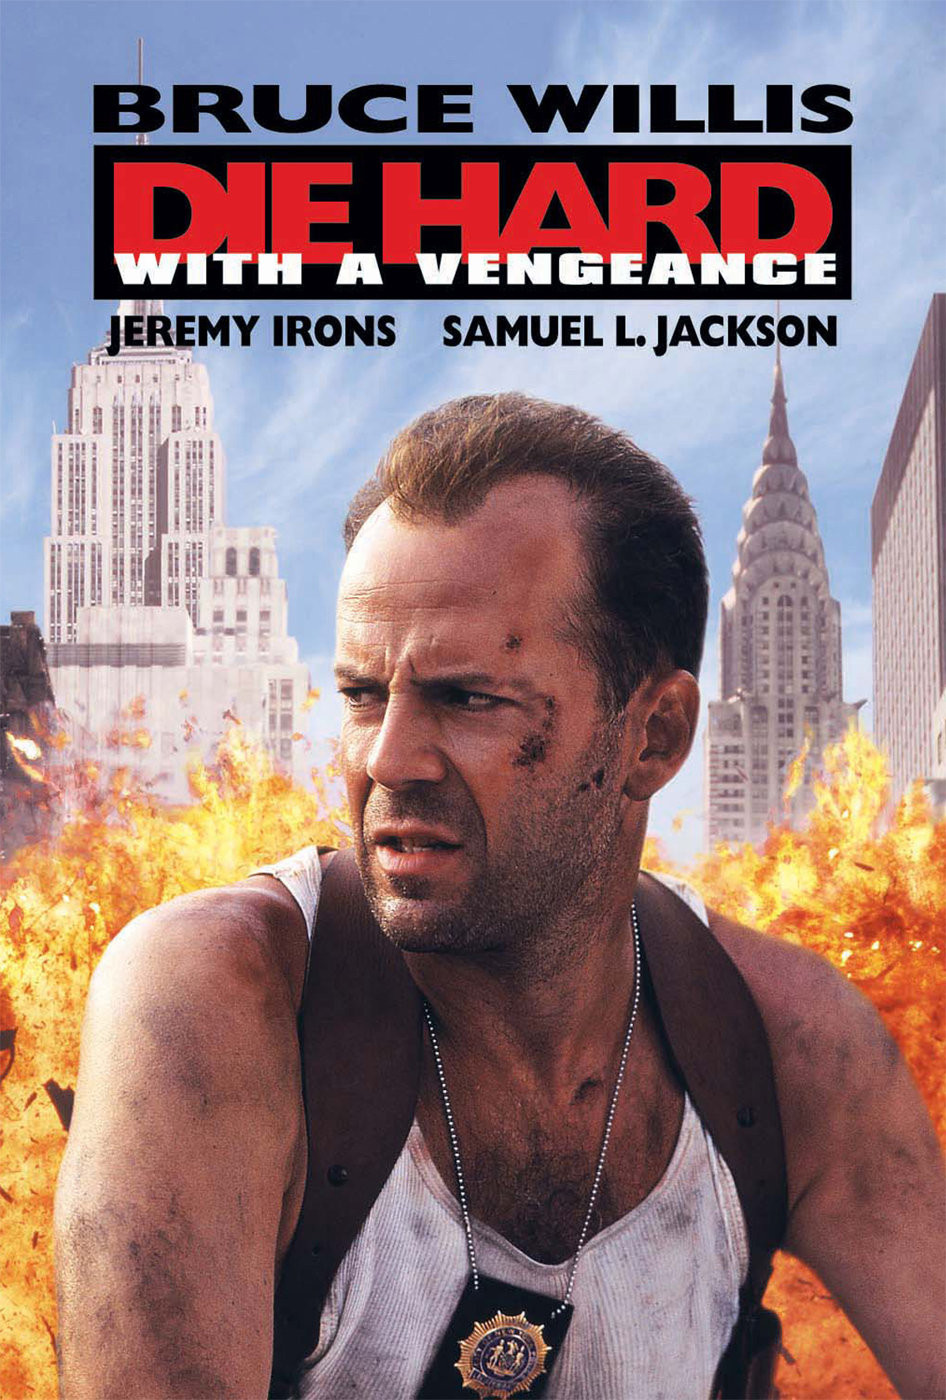 die hard vengeance Thanks to Die Hard with a Vengeance, I Can Stomach Violence